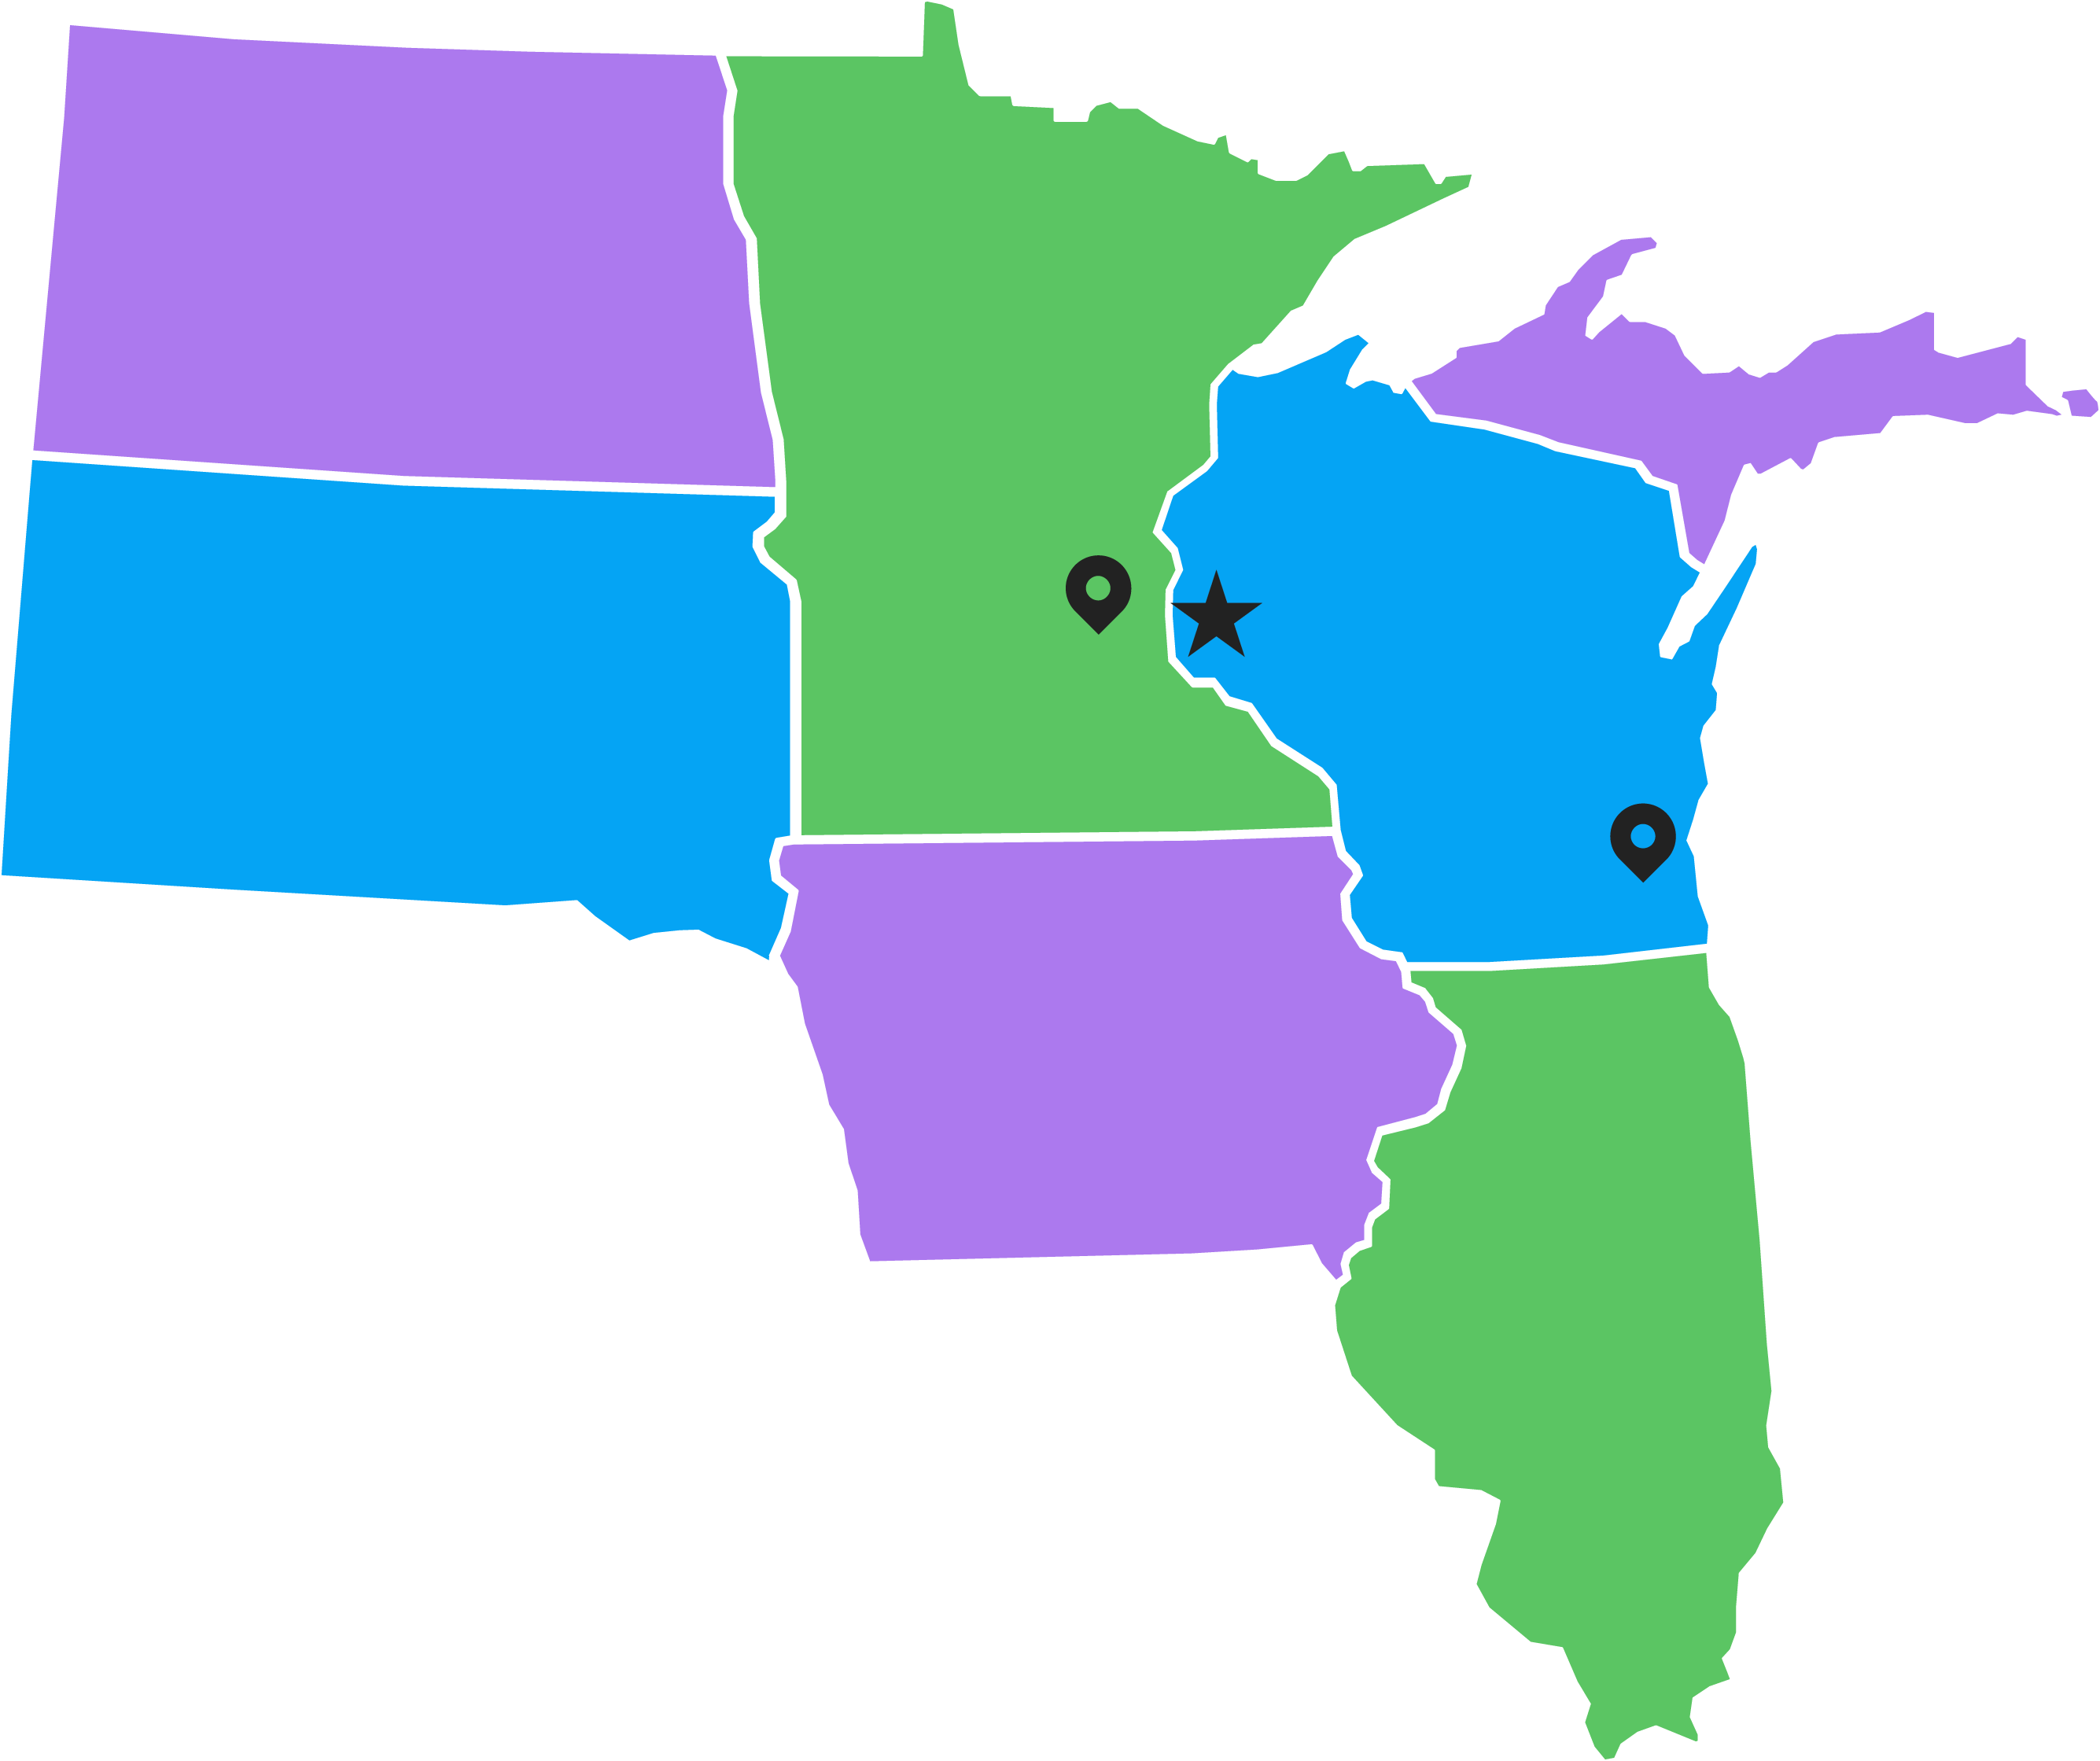 Map of Midwest